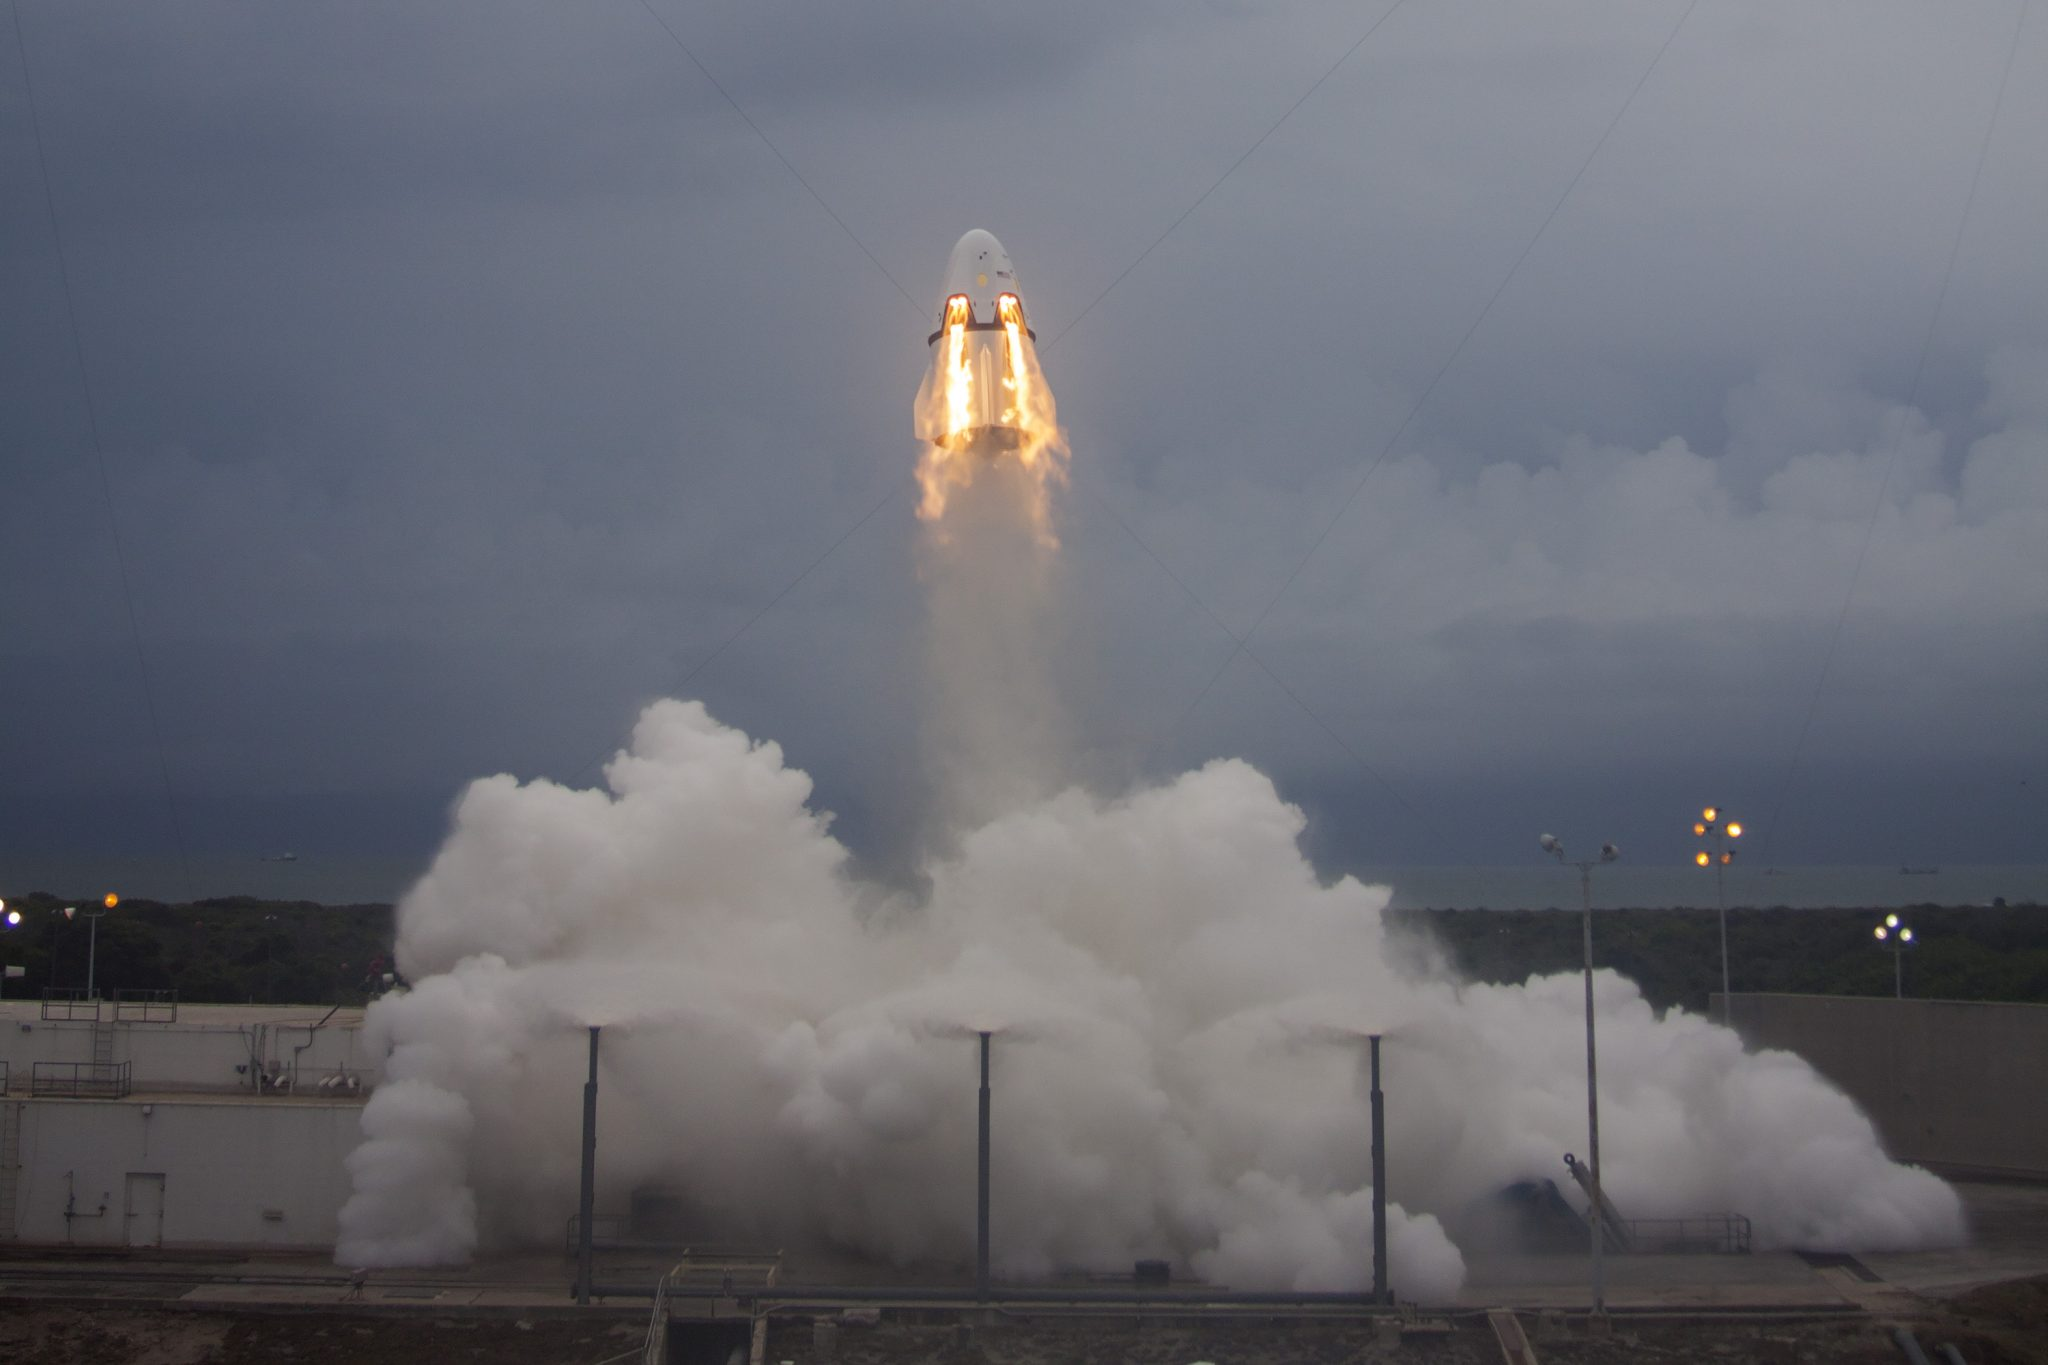 SpaceX, Crew Dragon, Pad Abort Test